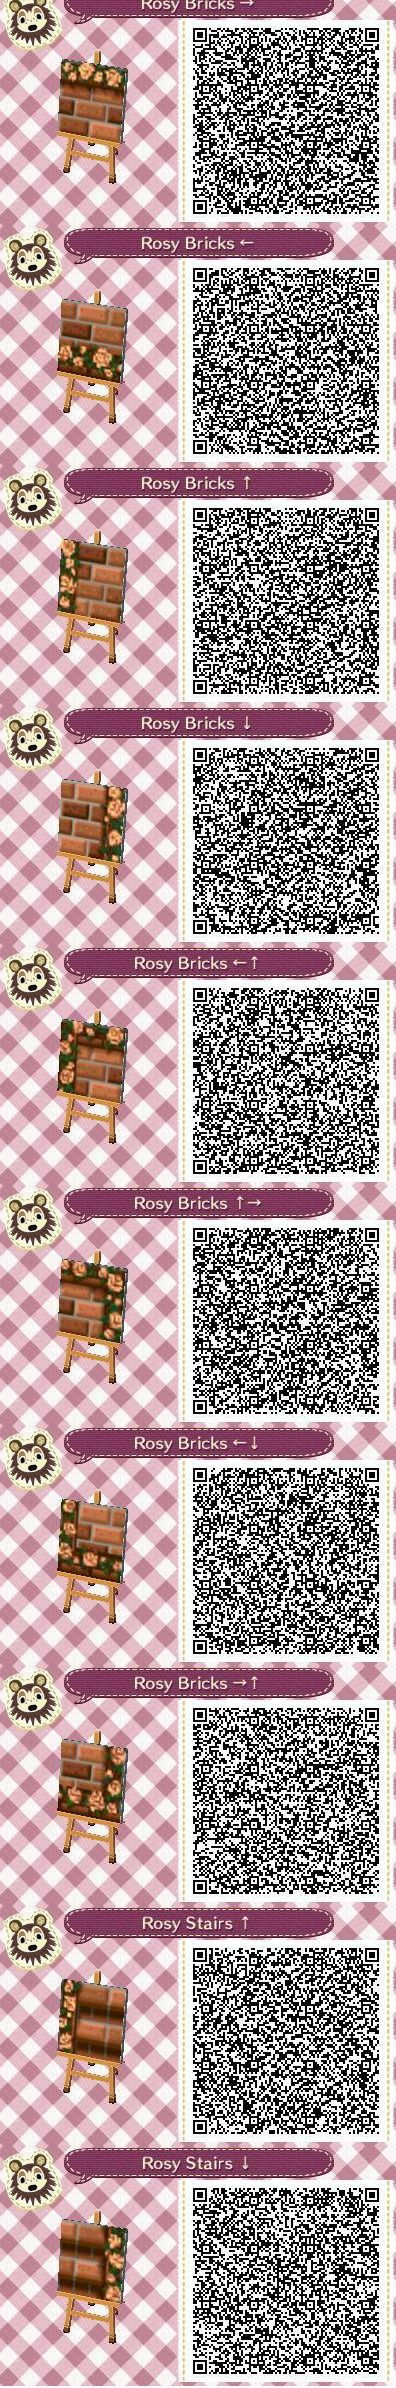 Rosy Bricks Part 1 QR codes --by Pixel Rose Designs on Tumblr http://pixelroses.tumblr.com/